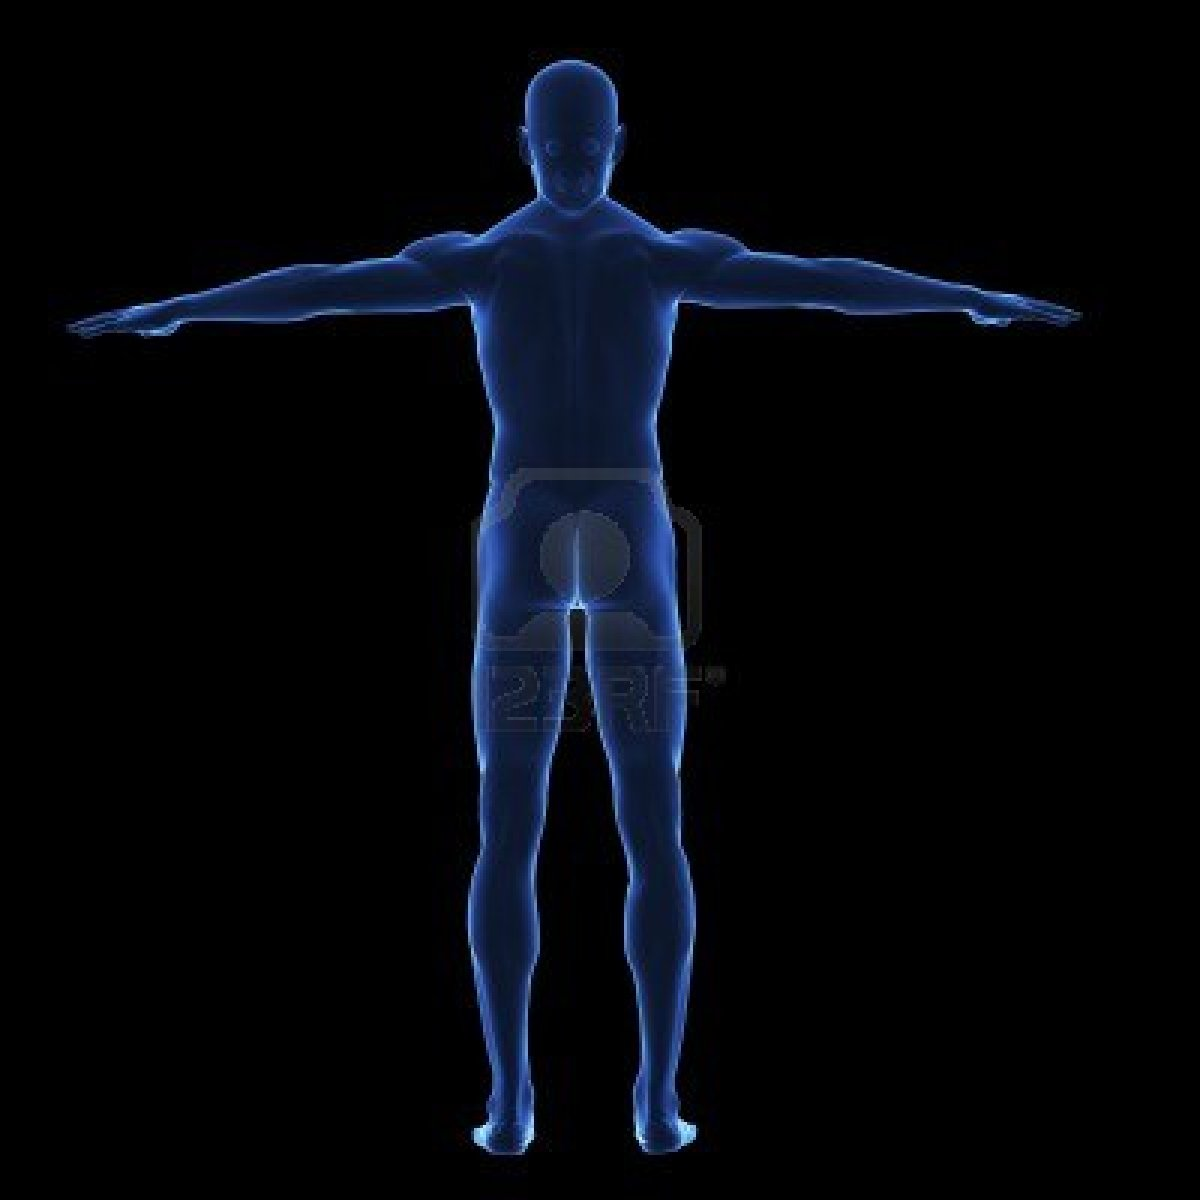 5993906 X Ray Human Body From Behind On Lack Background IsolatedjpgX Ray Whole Body